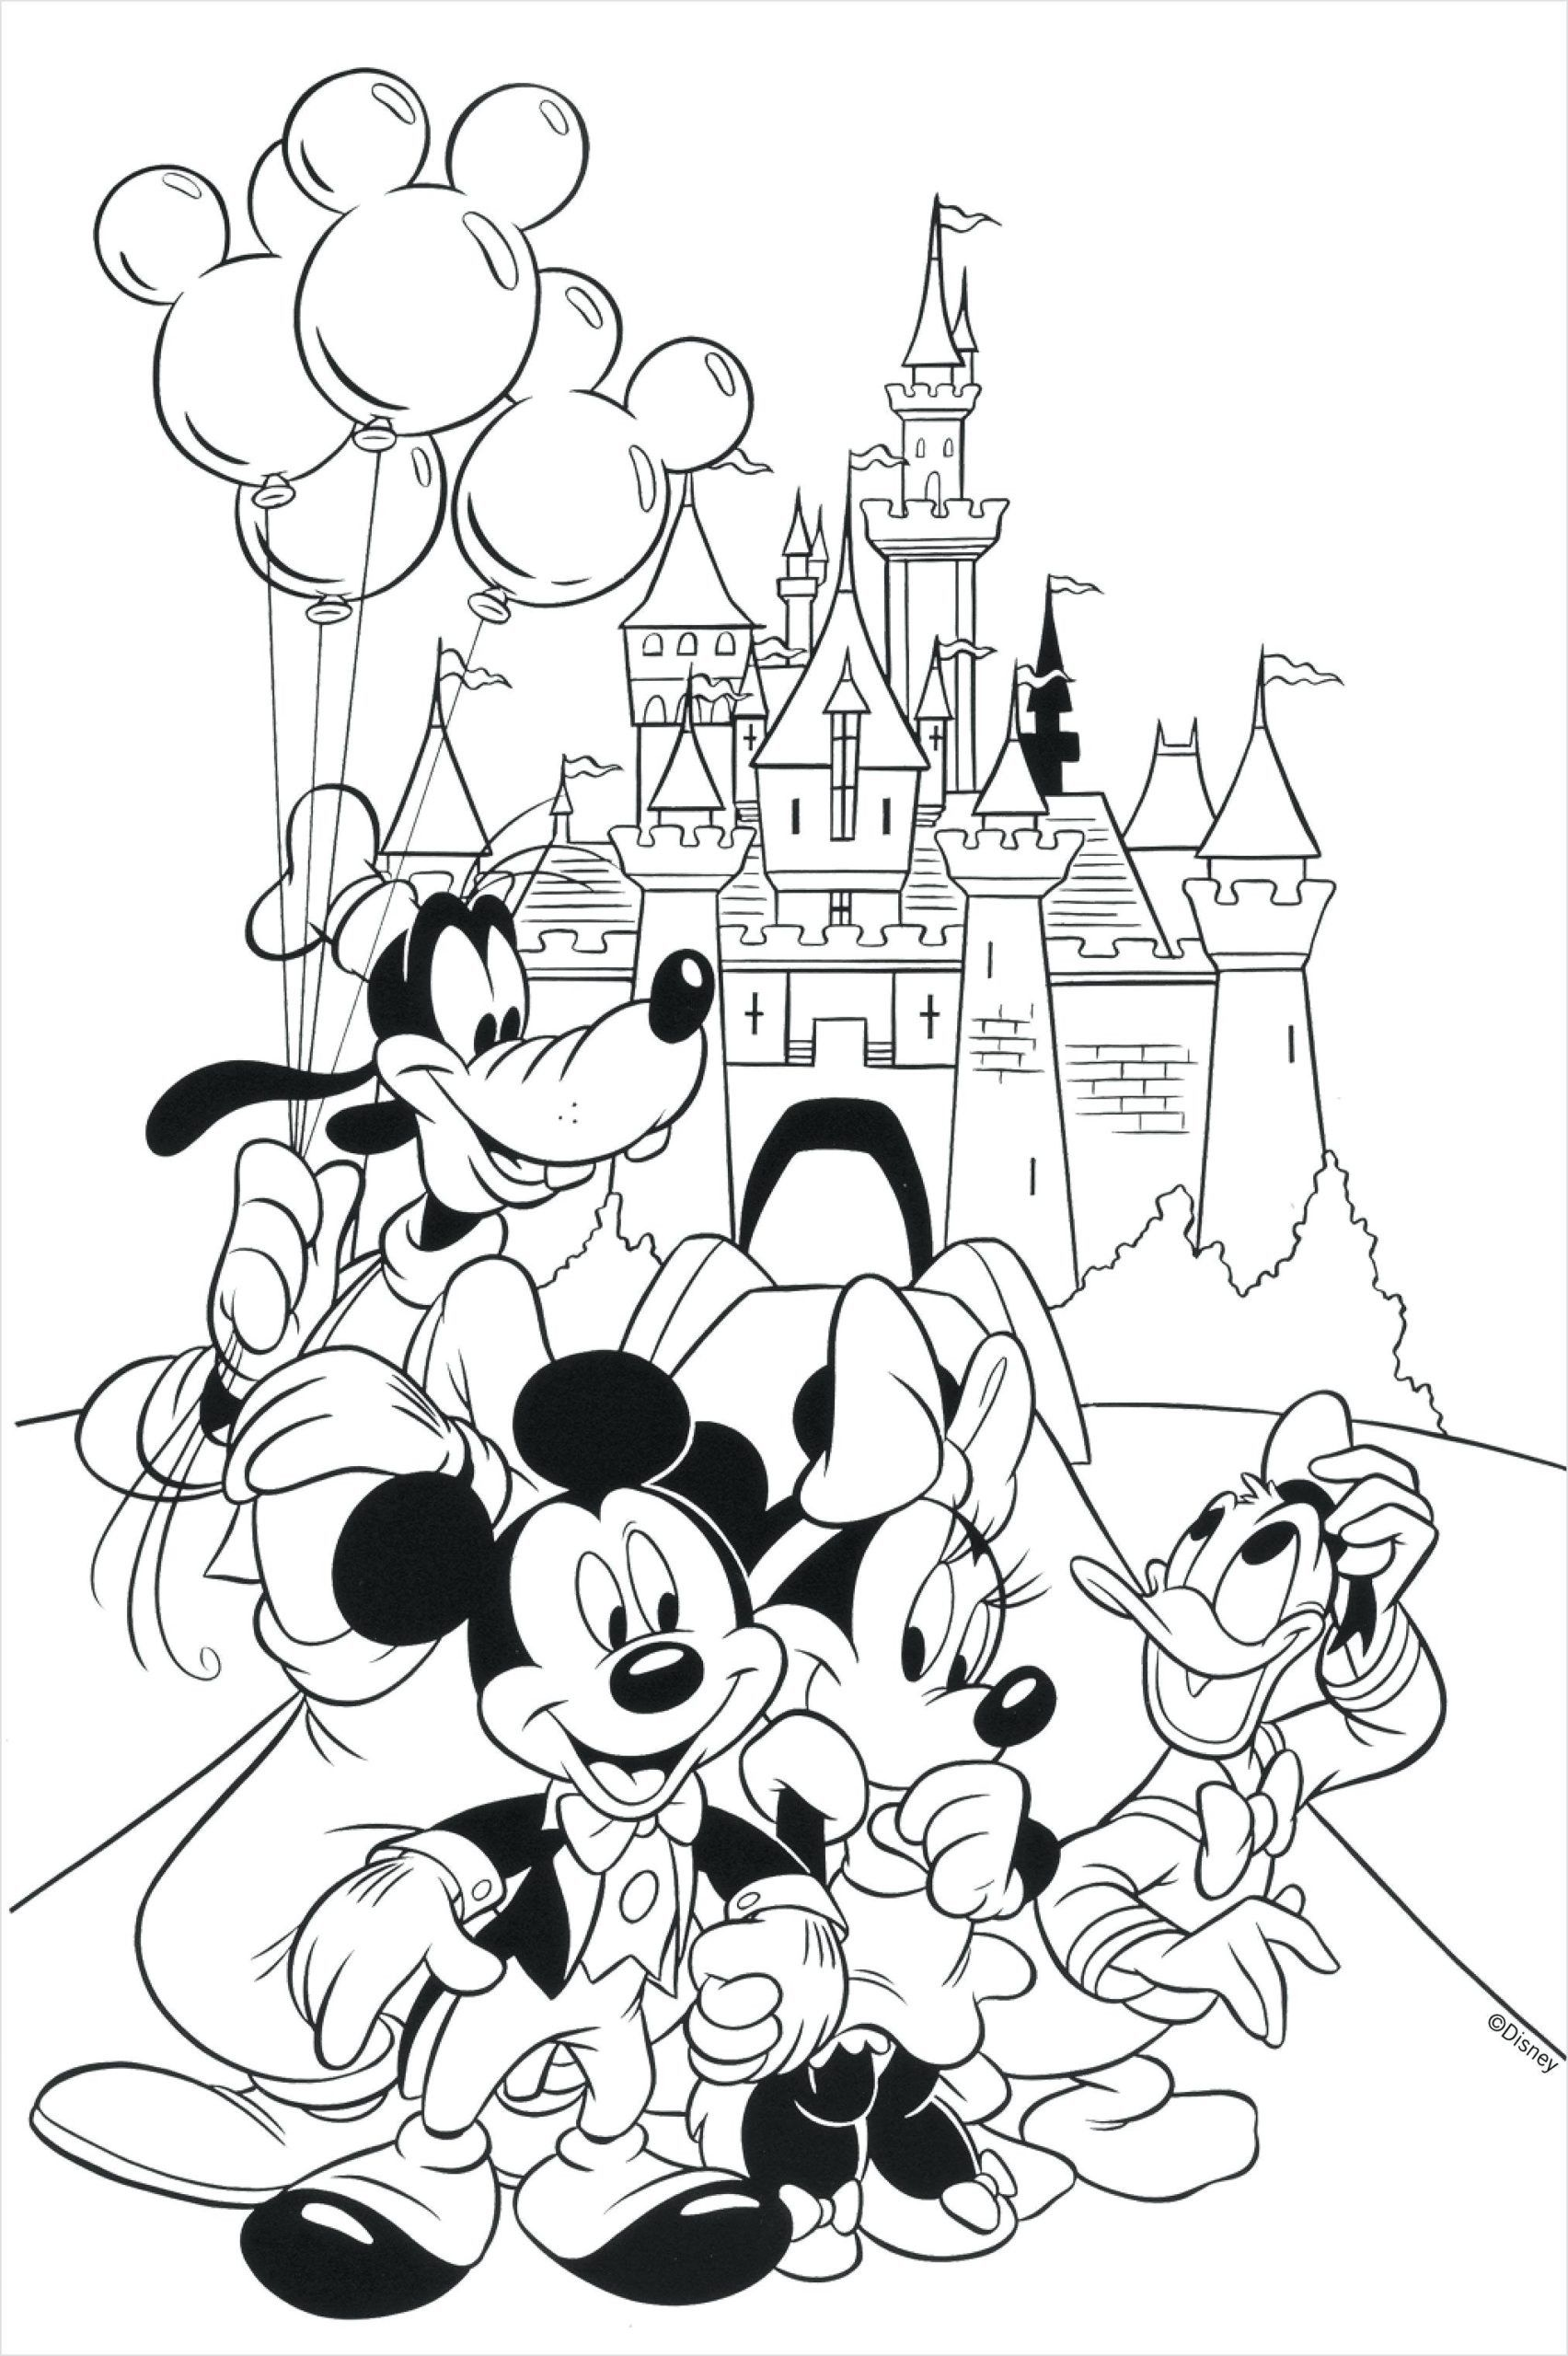 5 Worksheet Free Online Coloring Adults 59 Most Awesome